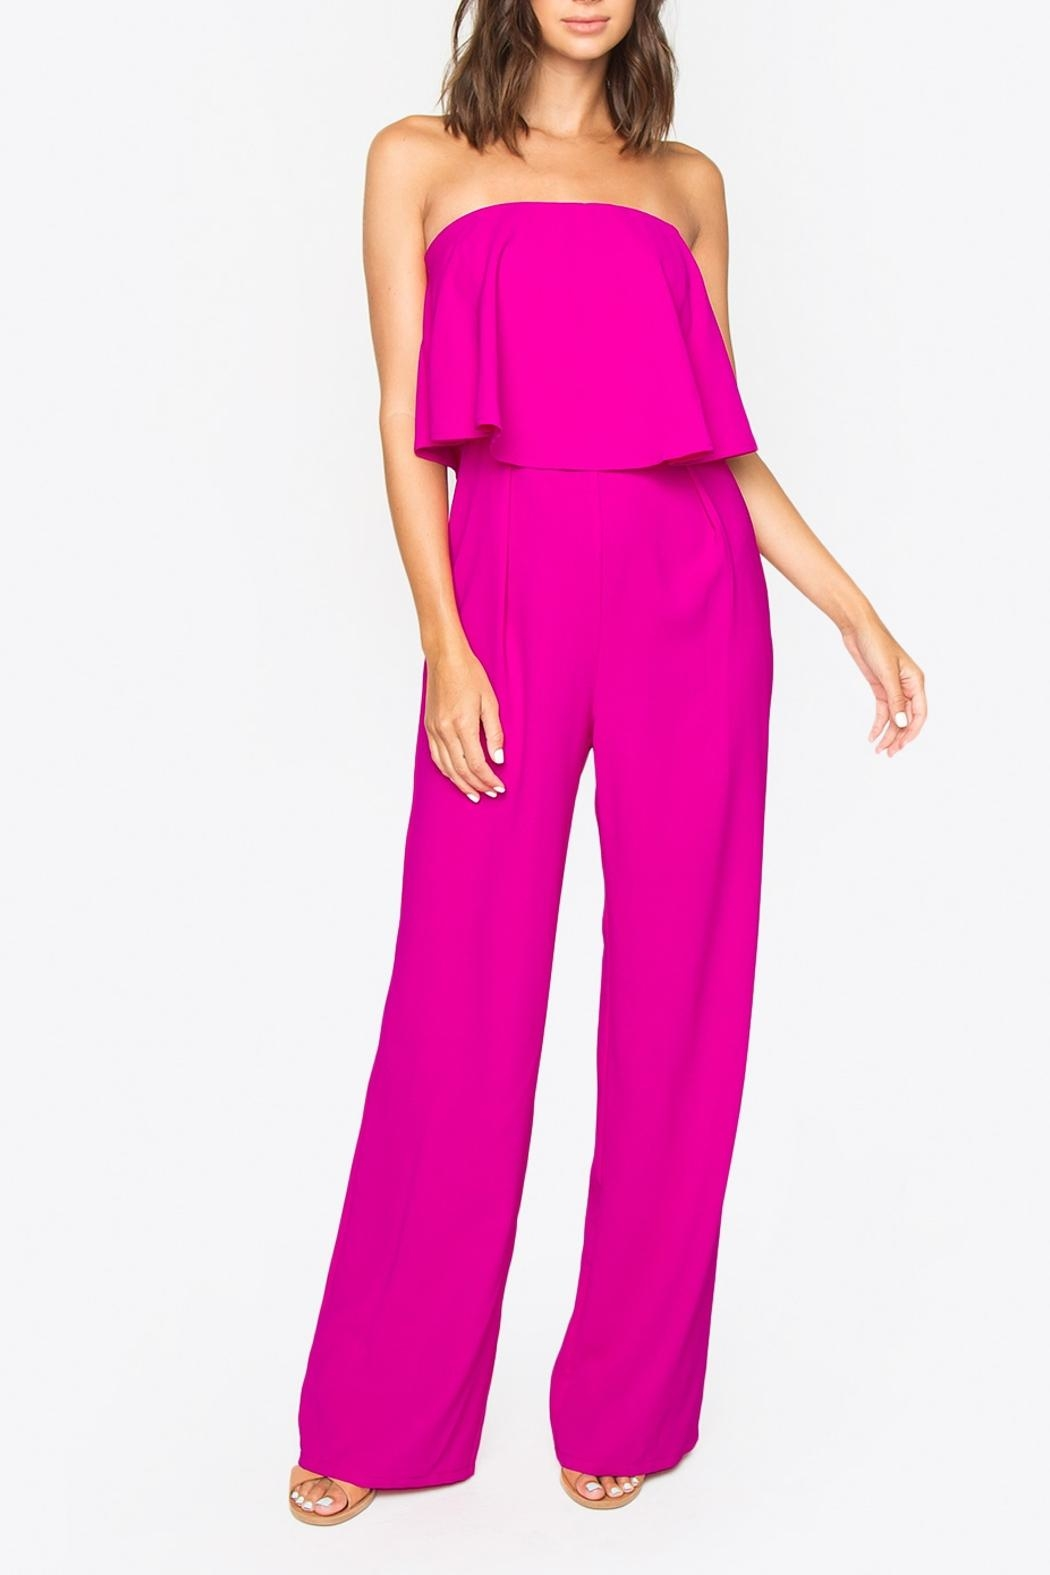 Sugar Lips Strapless Jumpsuit - Main Image